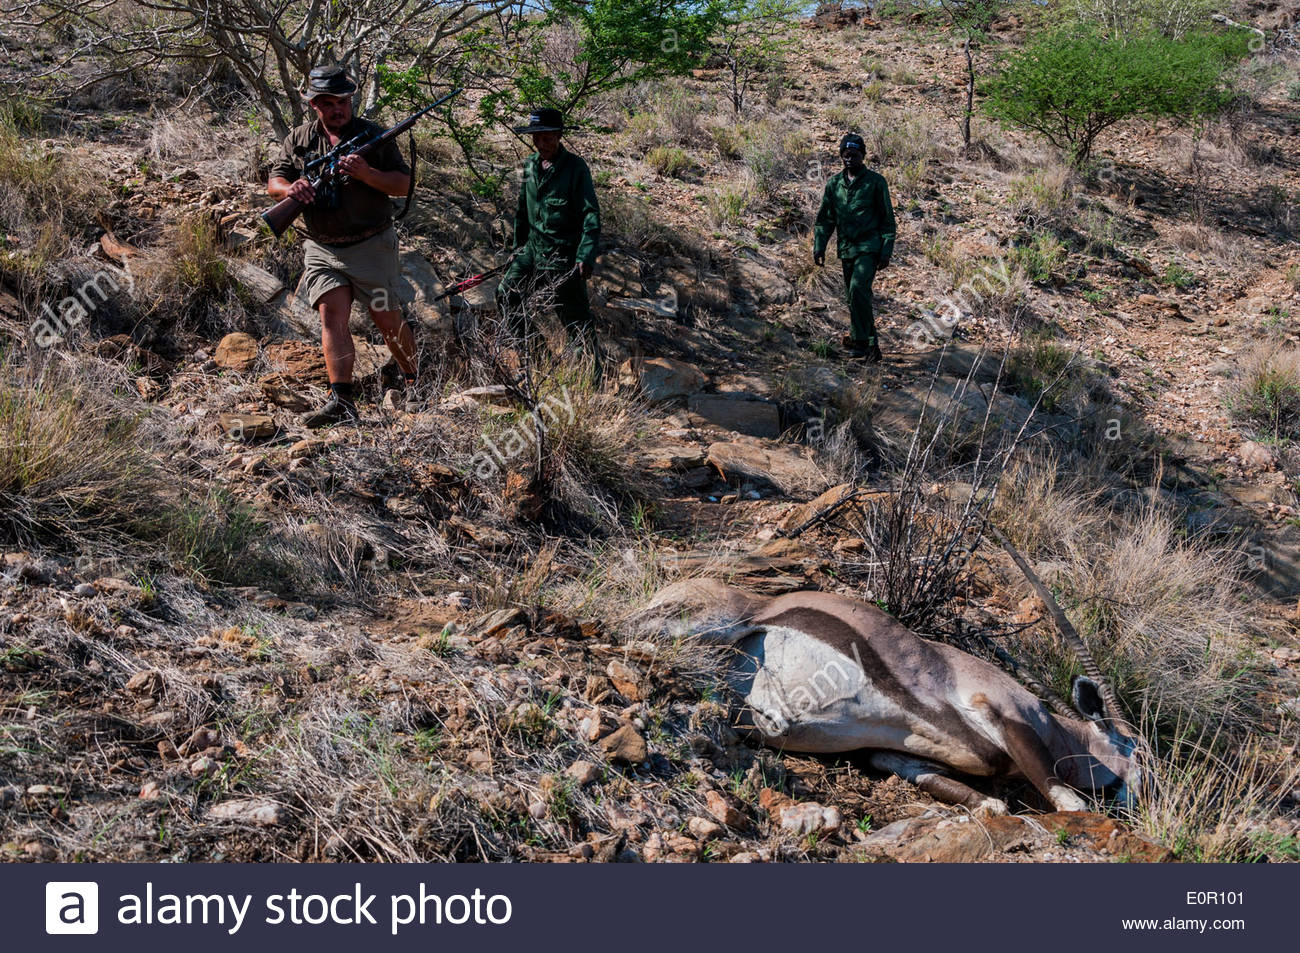 A professional hunter and two helpers cautiously approach a trophy animal (an oryx antelope) that was shot during a hunt. - Stock Image